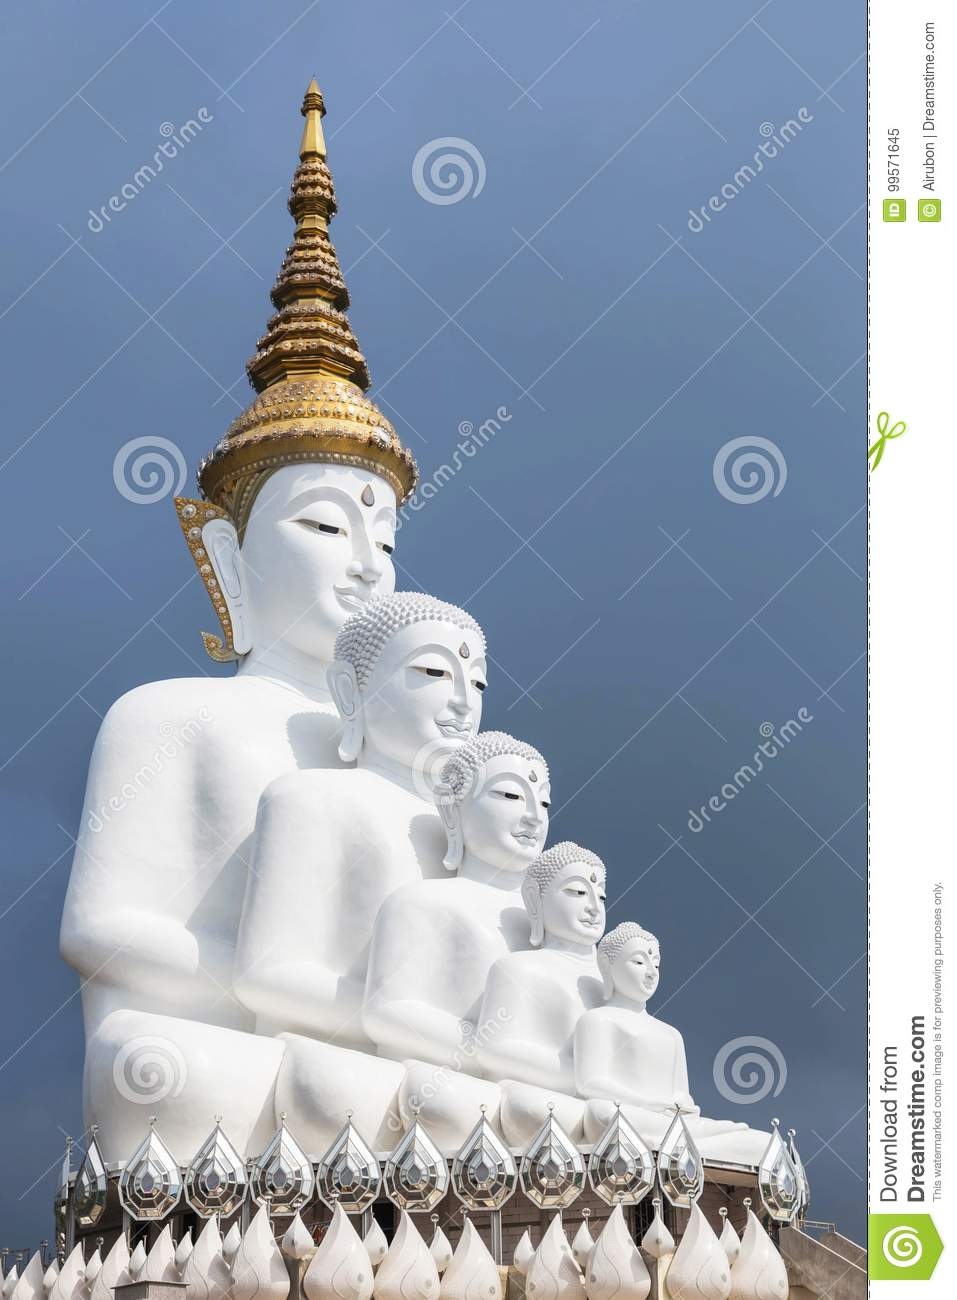 Big white buddha statues sitting on valley mountain with fog in Wat Phra That Pha Son Kaew Thailand.